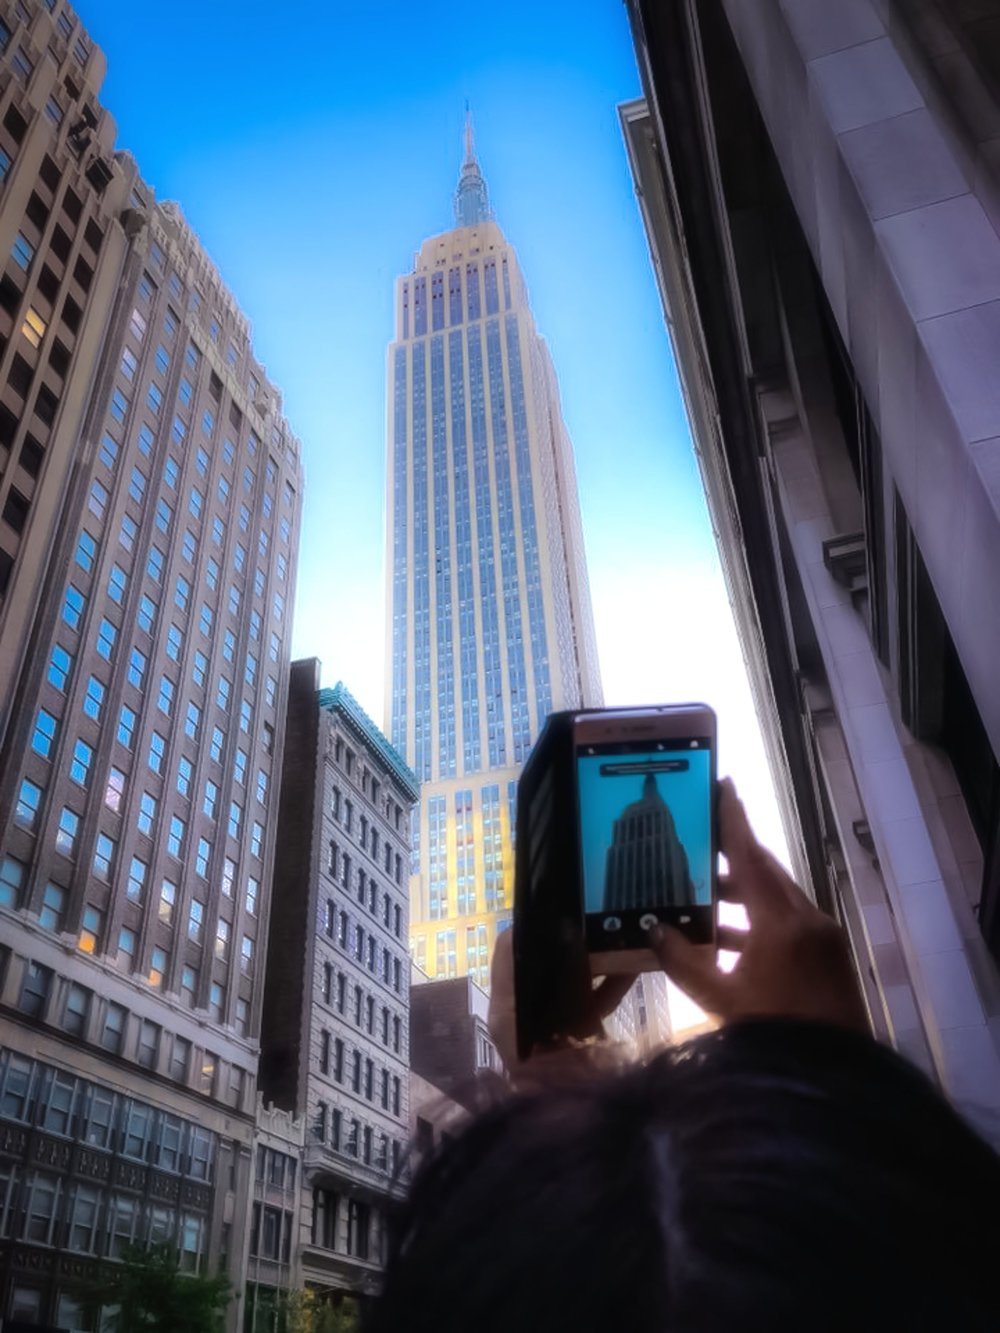 La piccola new yorker capturing her favorite building: the empire state building. photo    @lucascompan